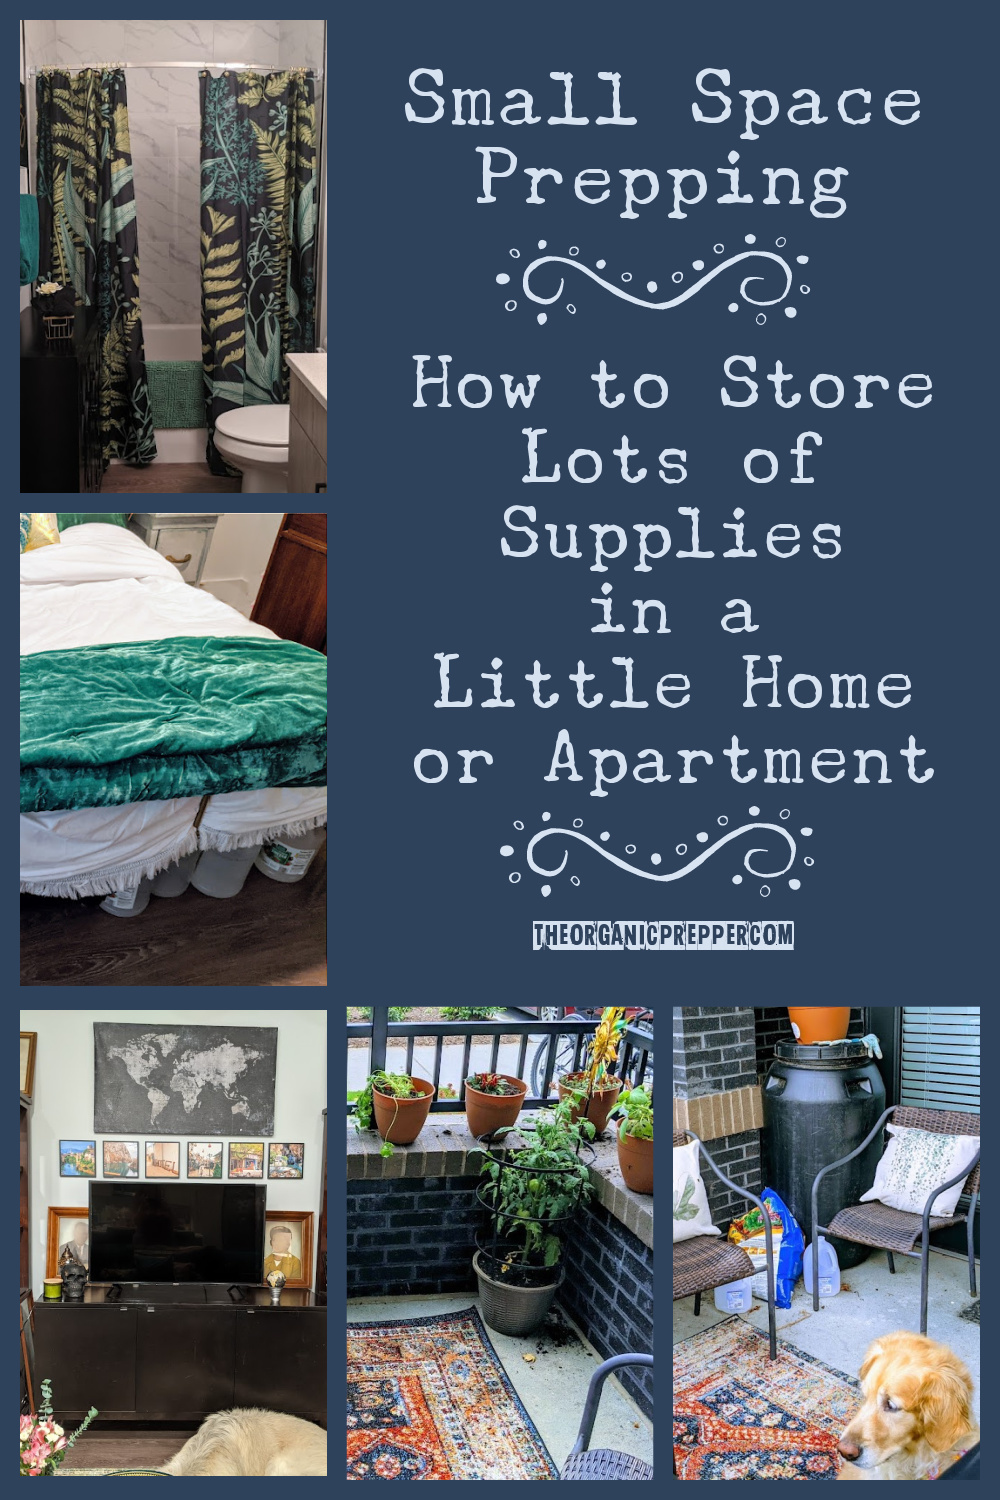 Small Space Prepping: How to Store Lots of Supplies in a Little Home or Apartment